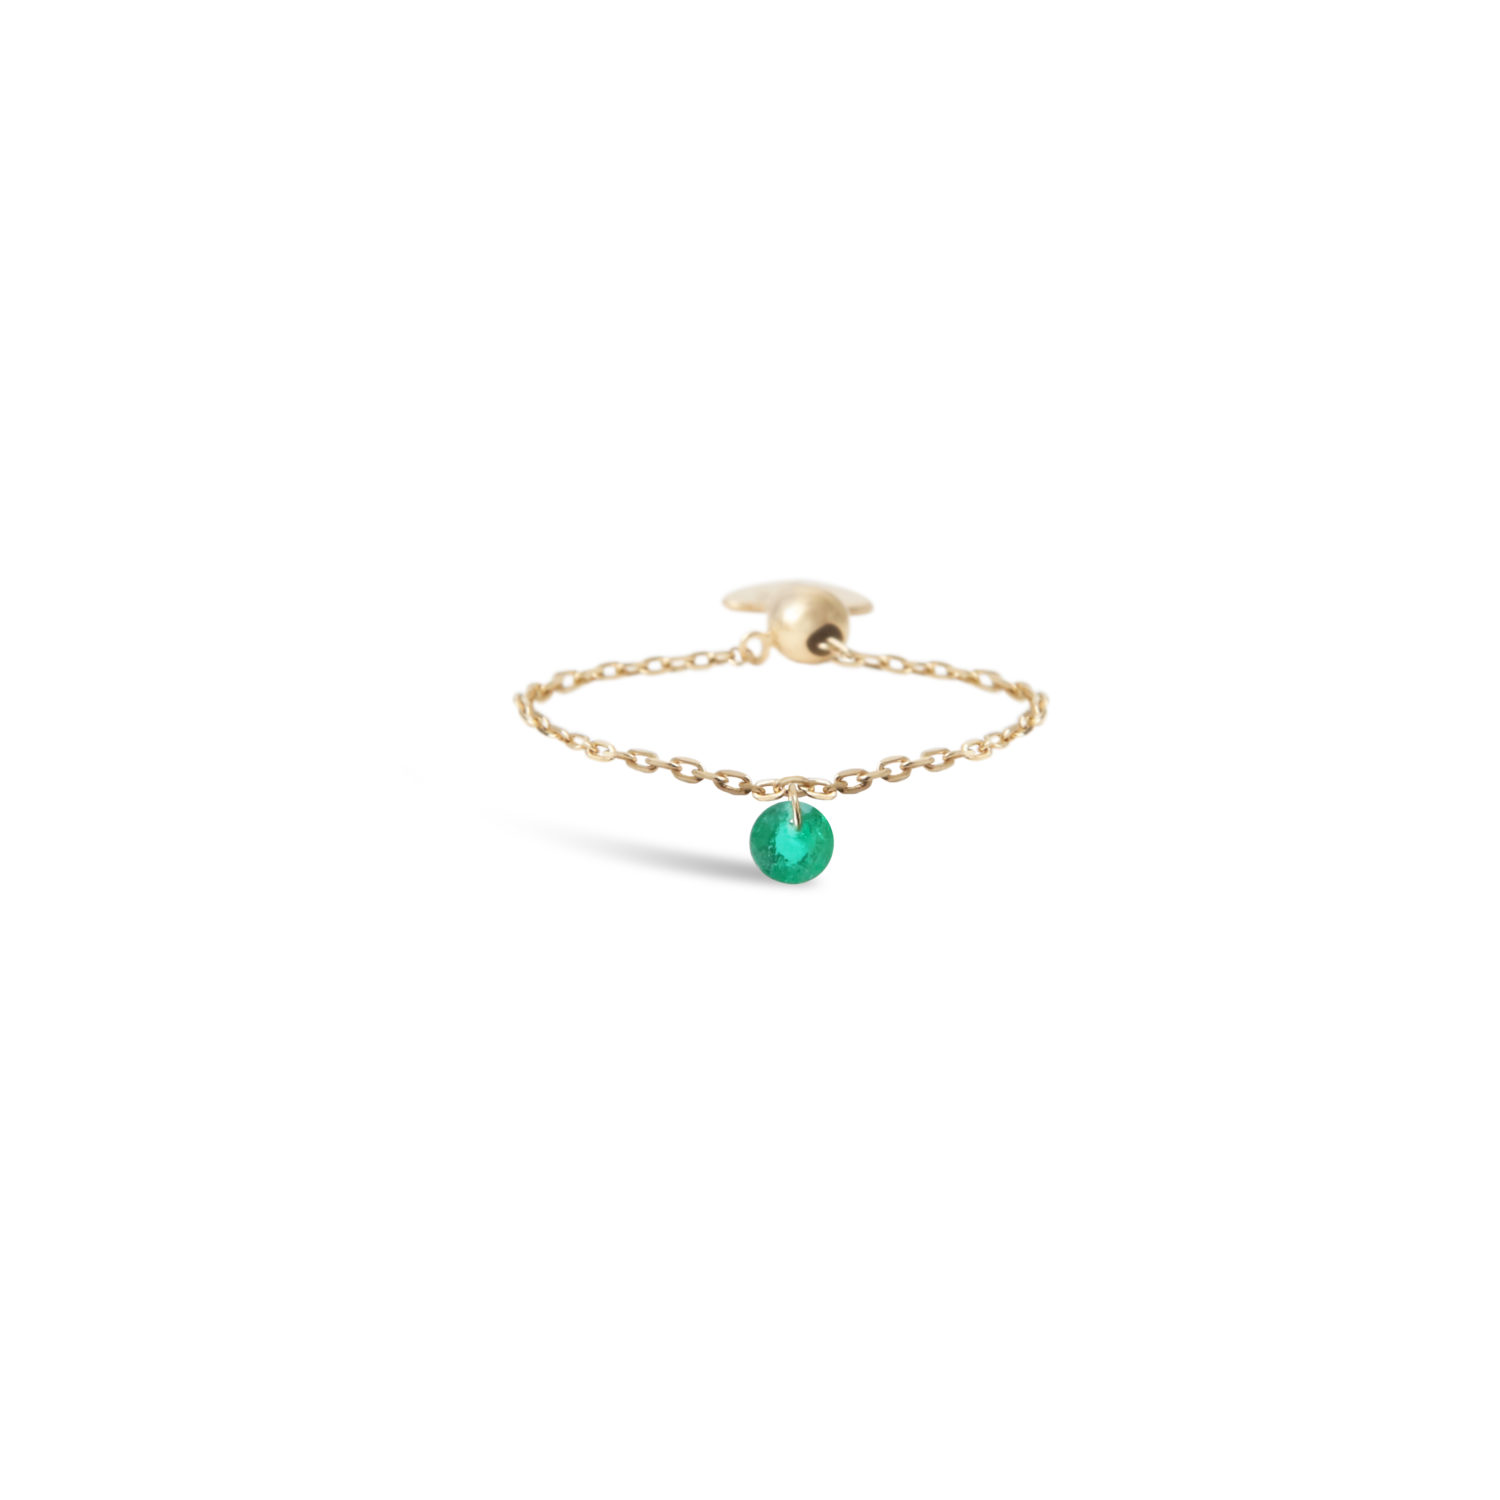 BAGUE CHAINETTE 1 EMERAUDE PERSEE